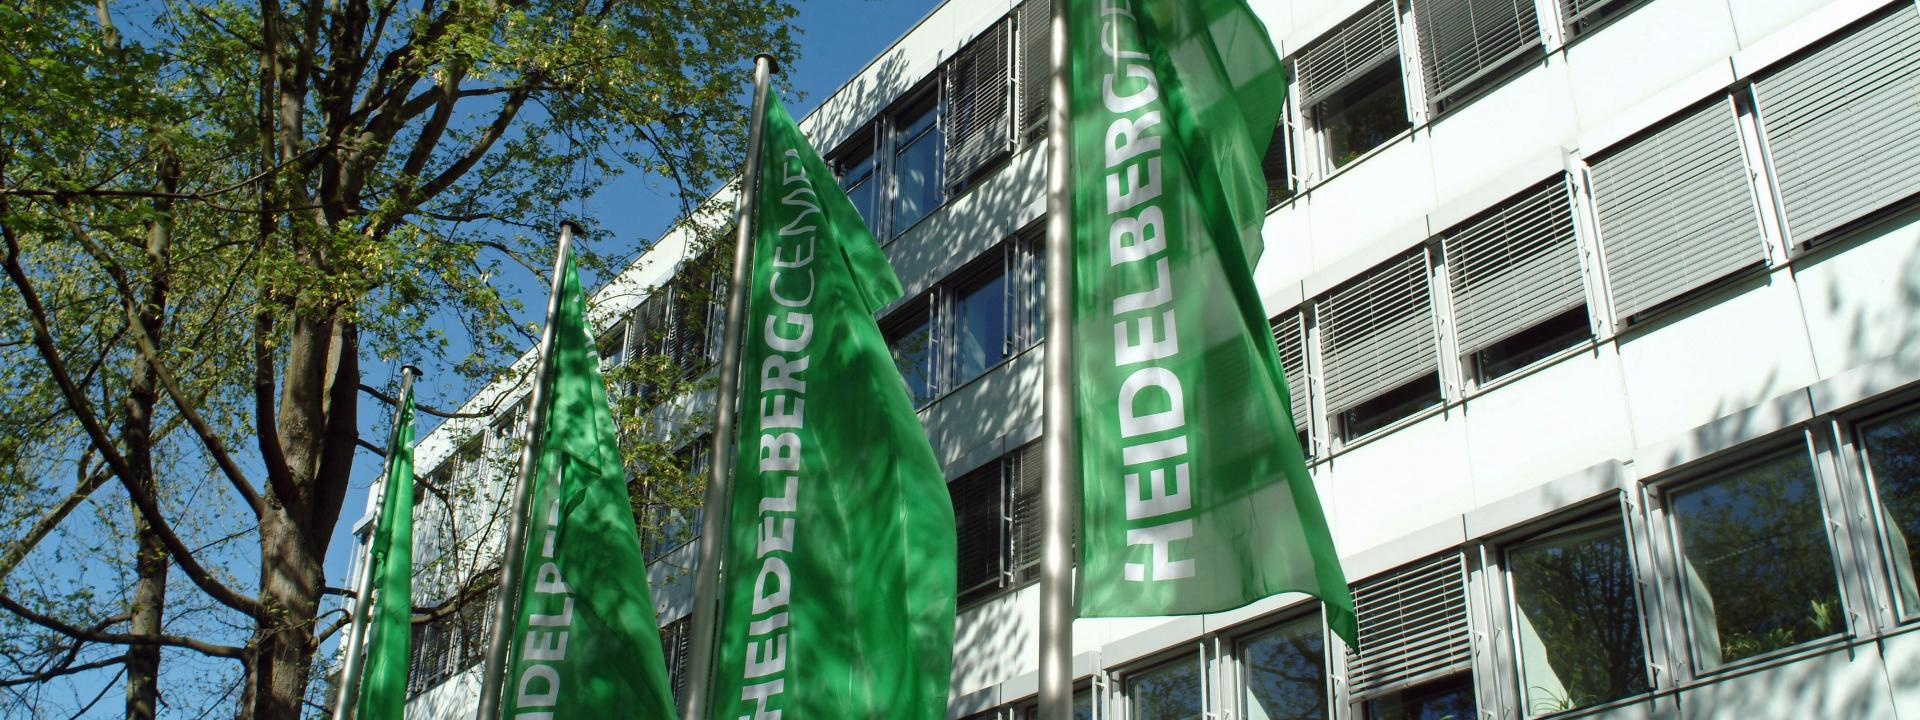 HeidelbergCement flags.